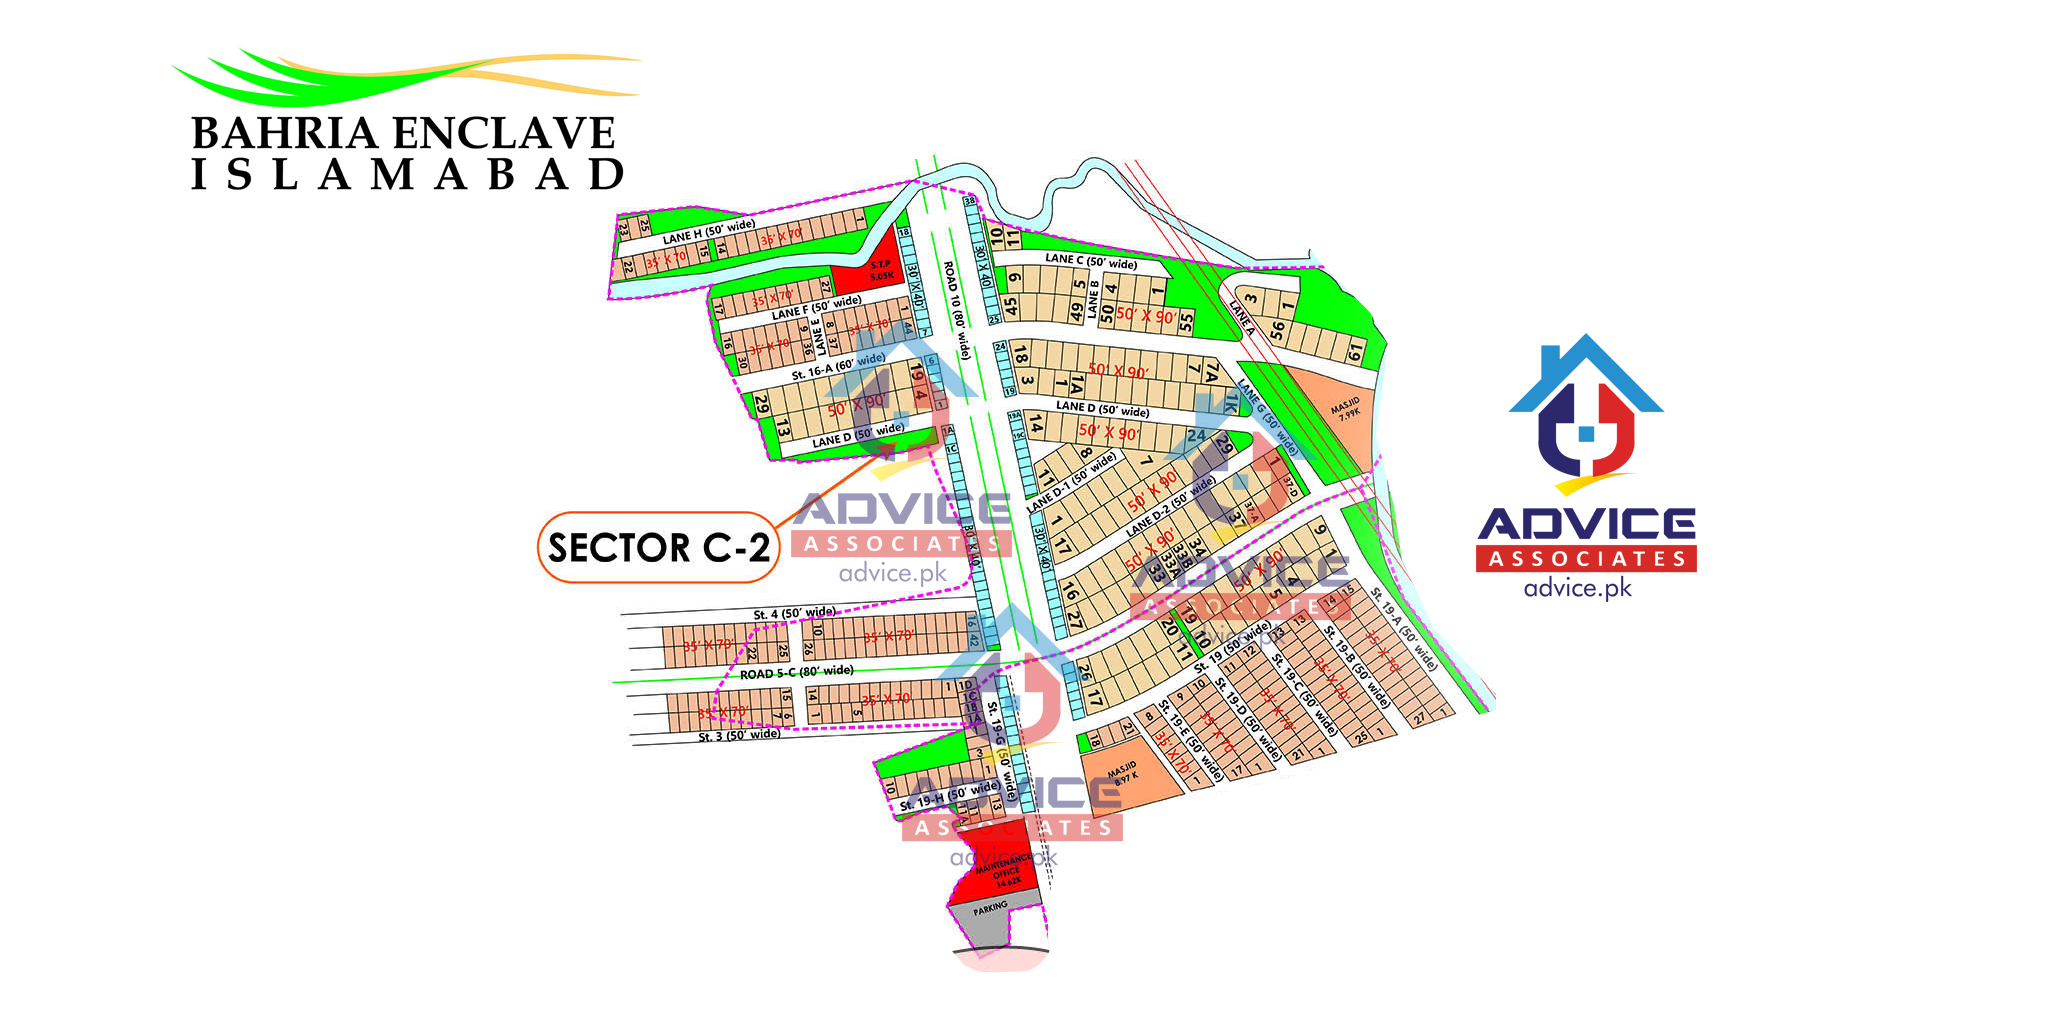 Bahria Enclave Sector C2 Map